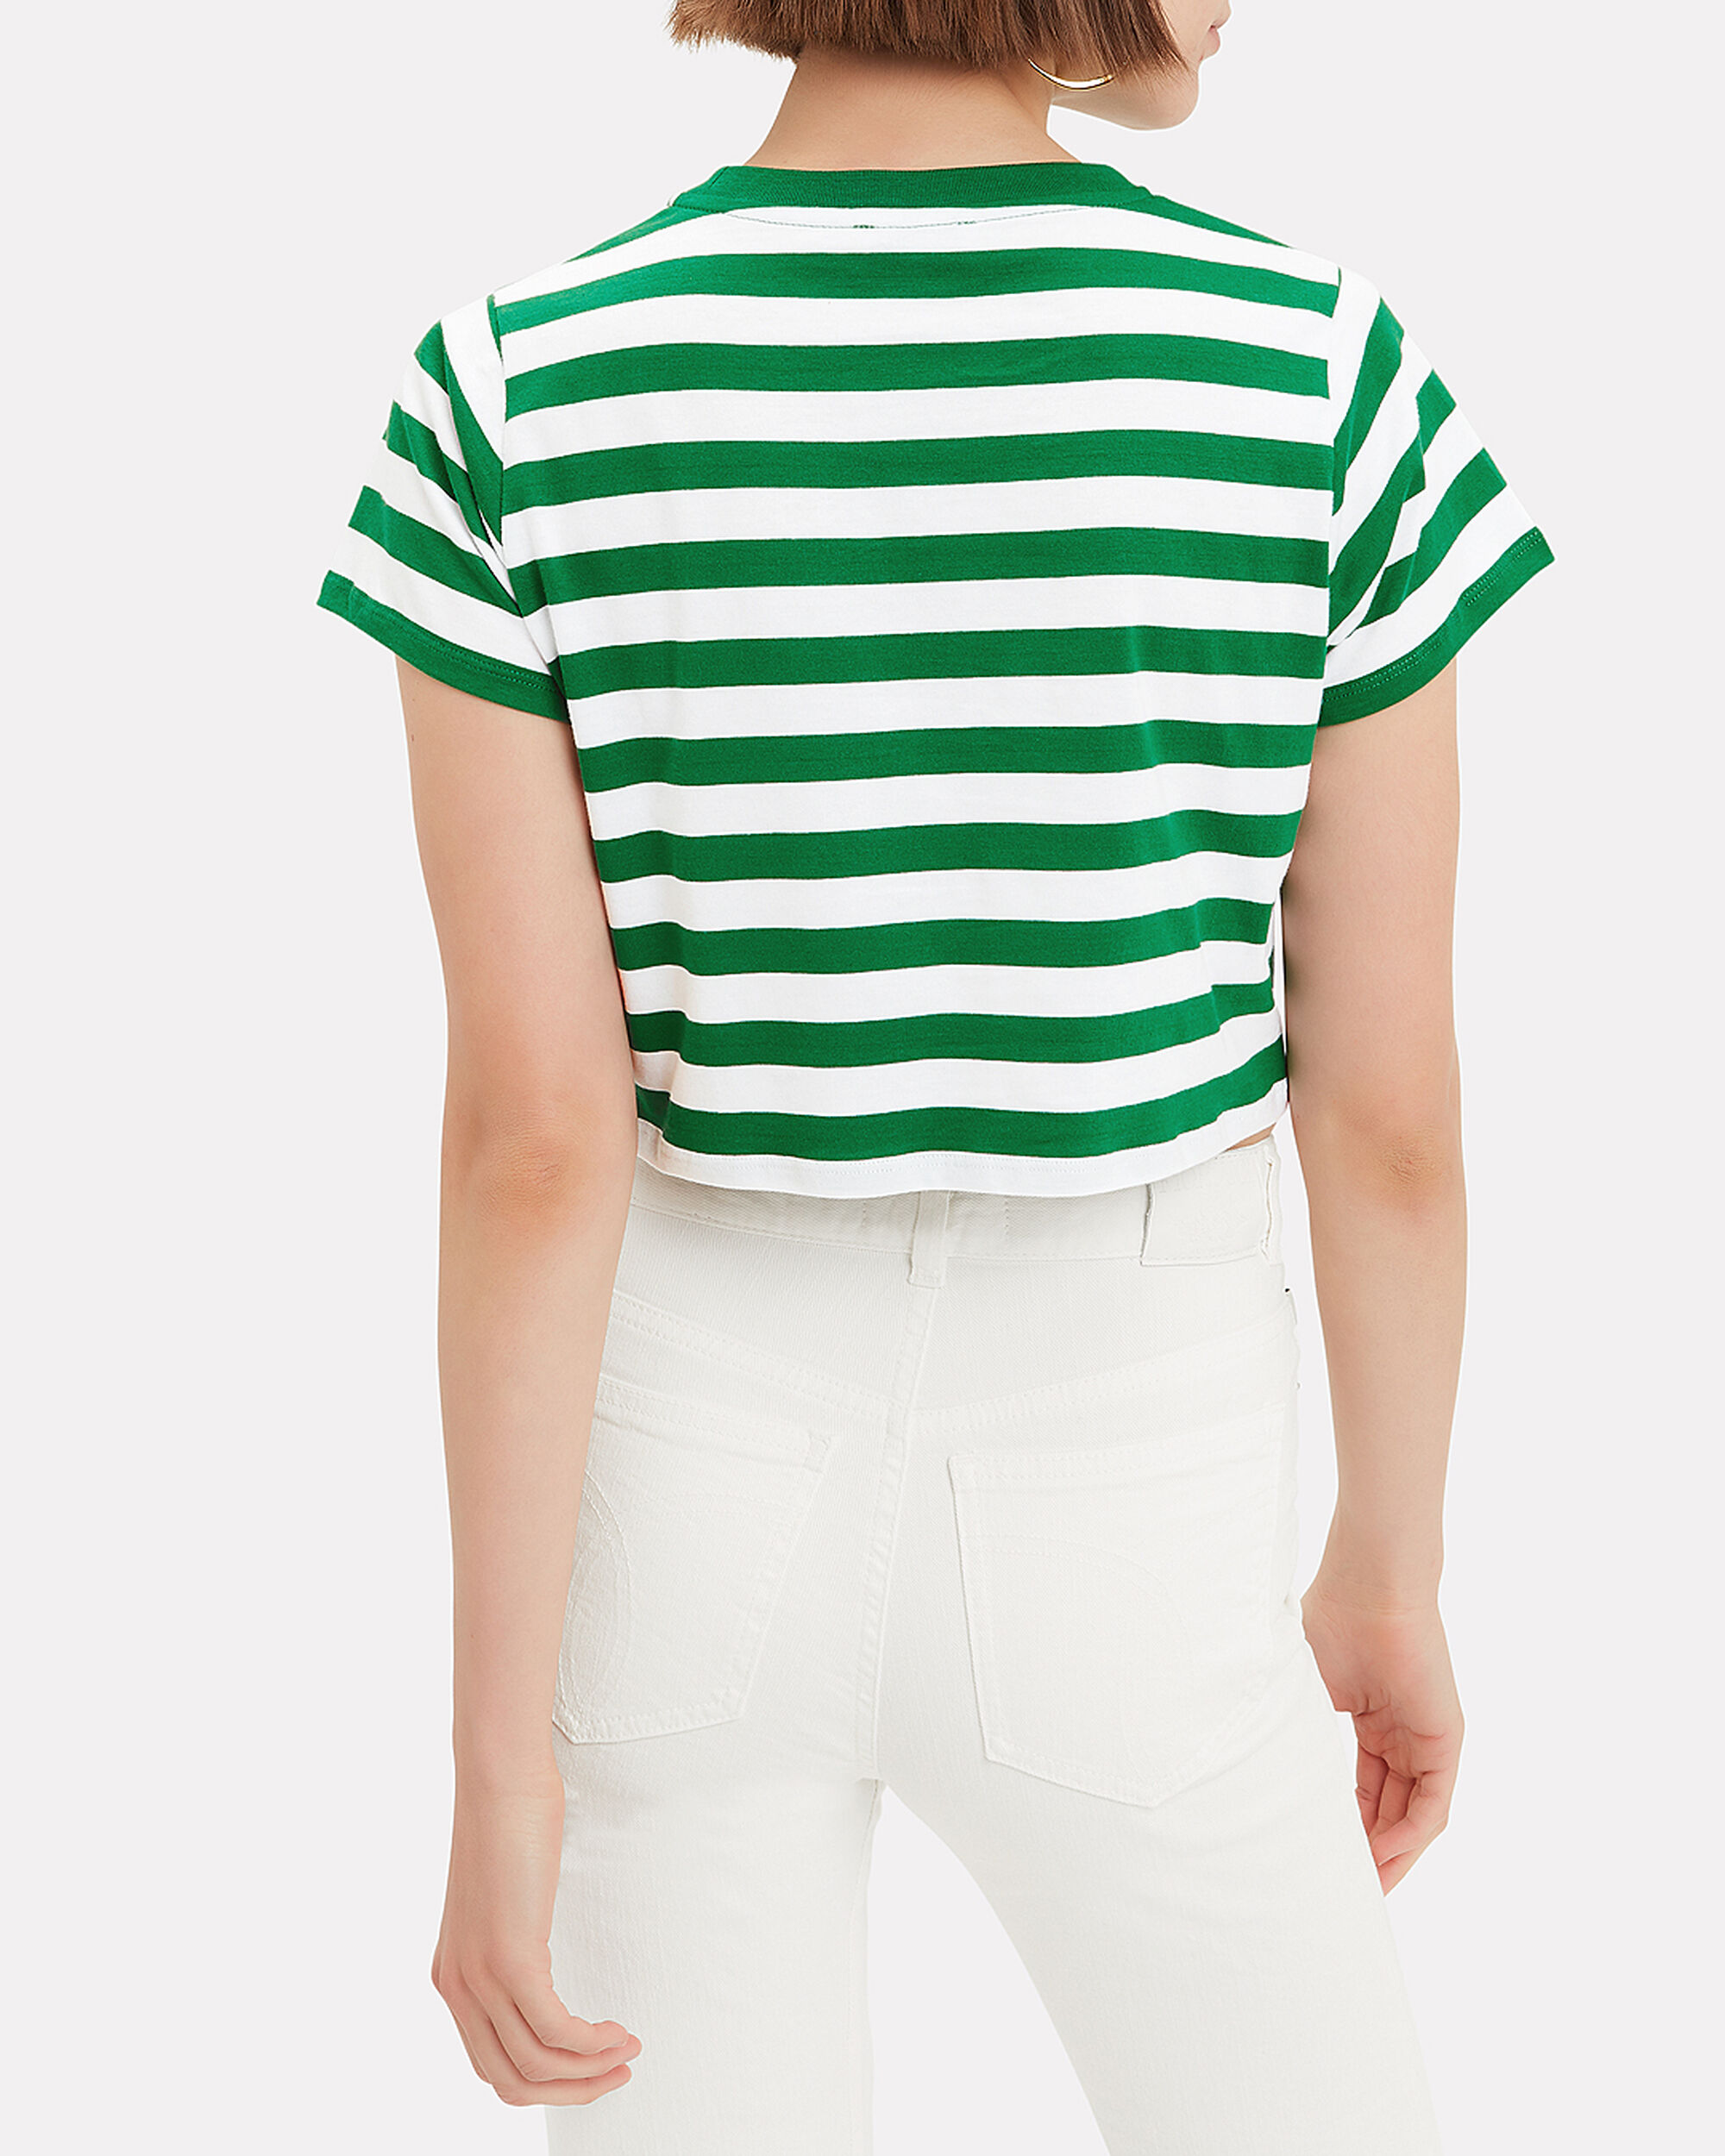 Iconic Striped Crop T-Shirt, MULTI, hi-res